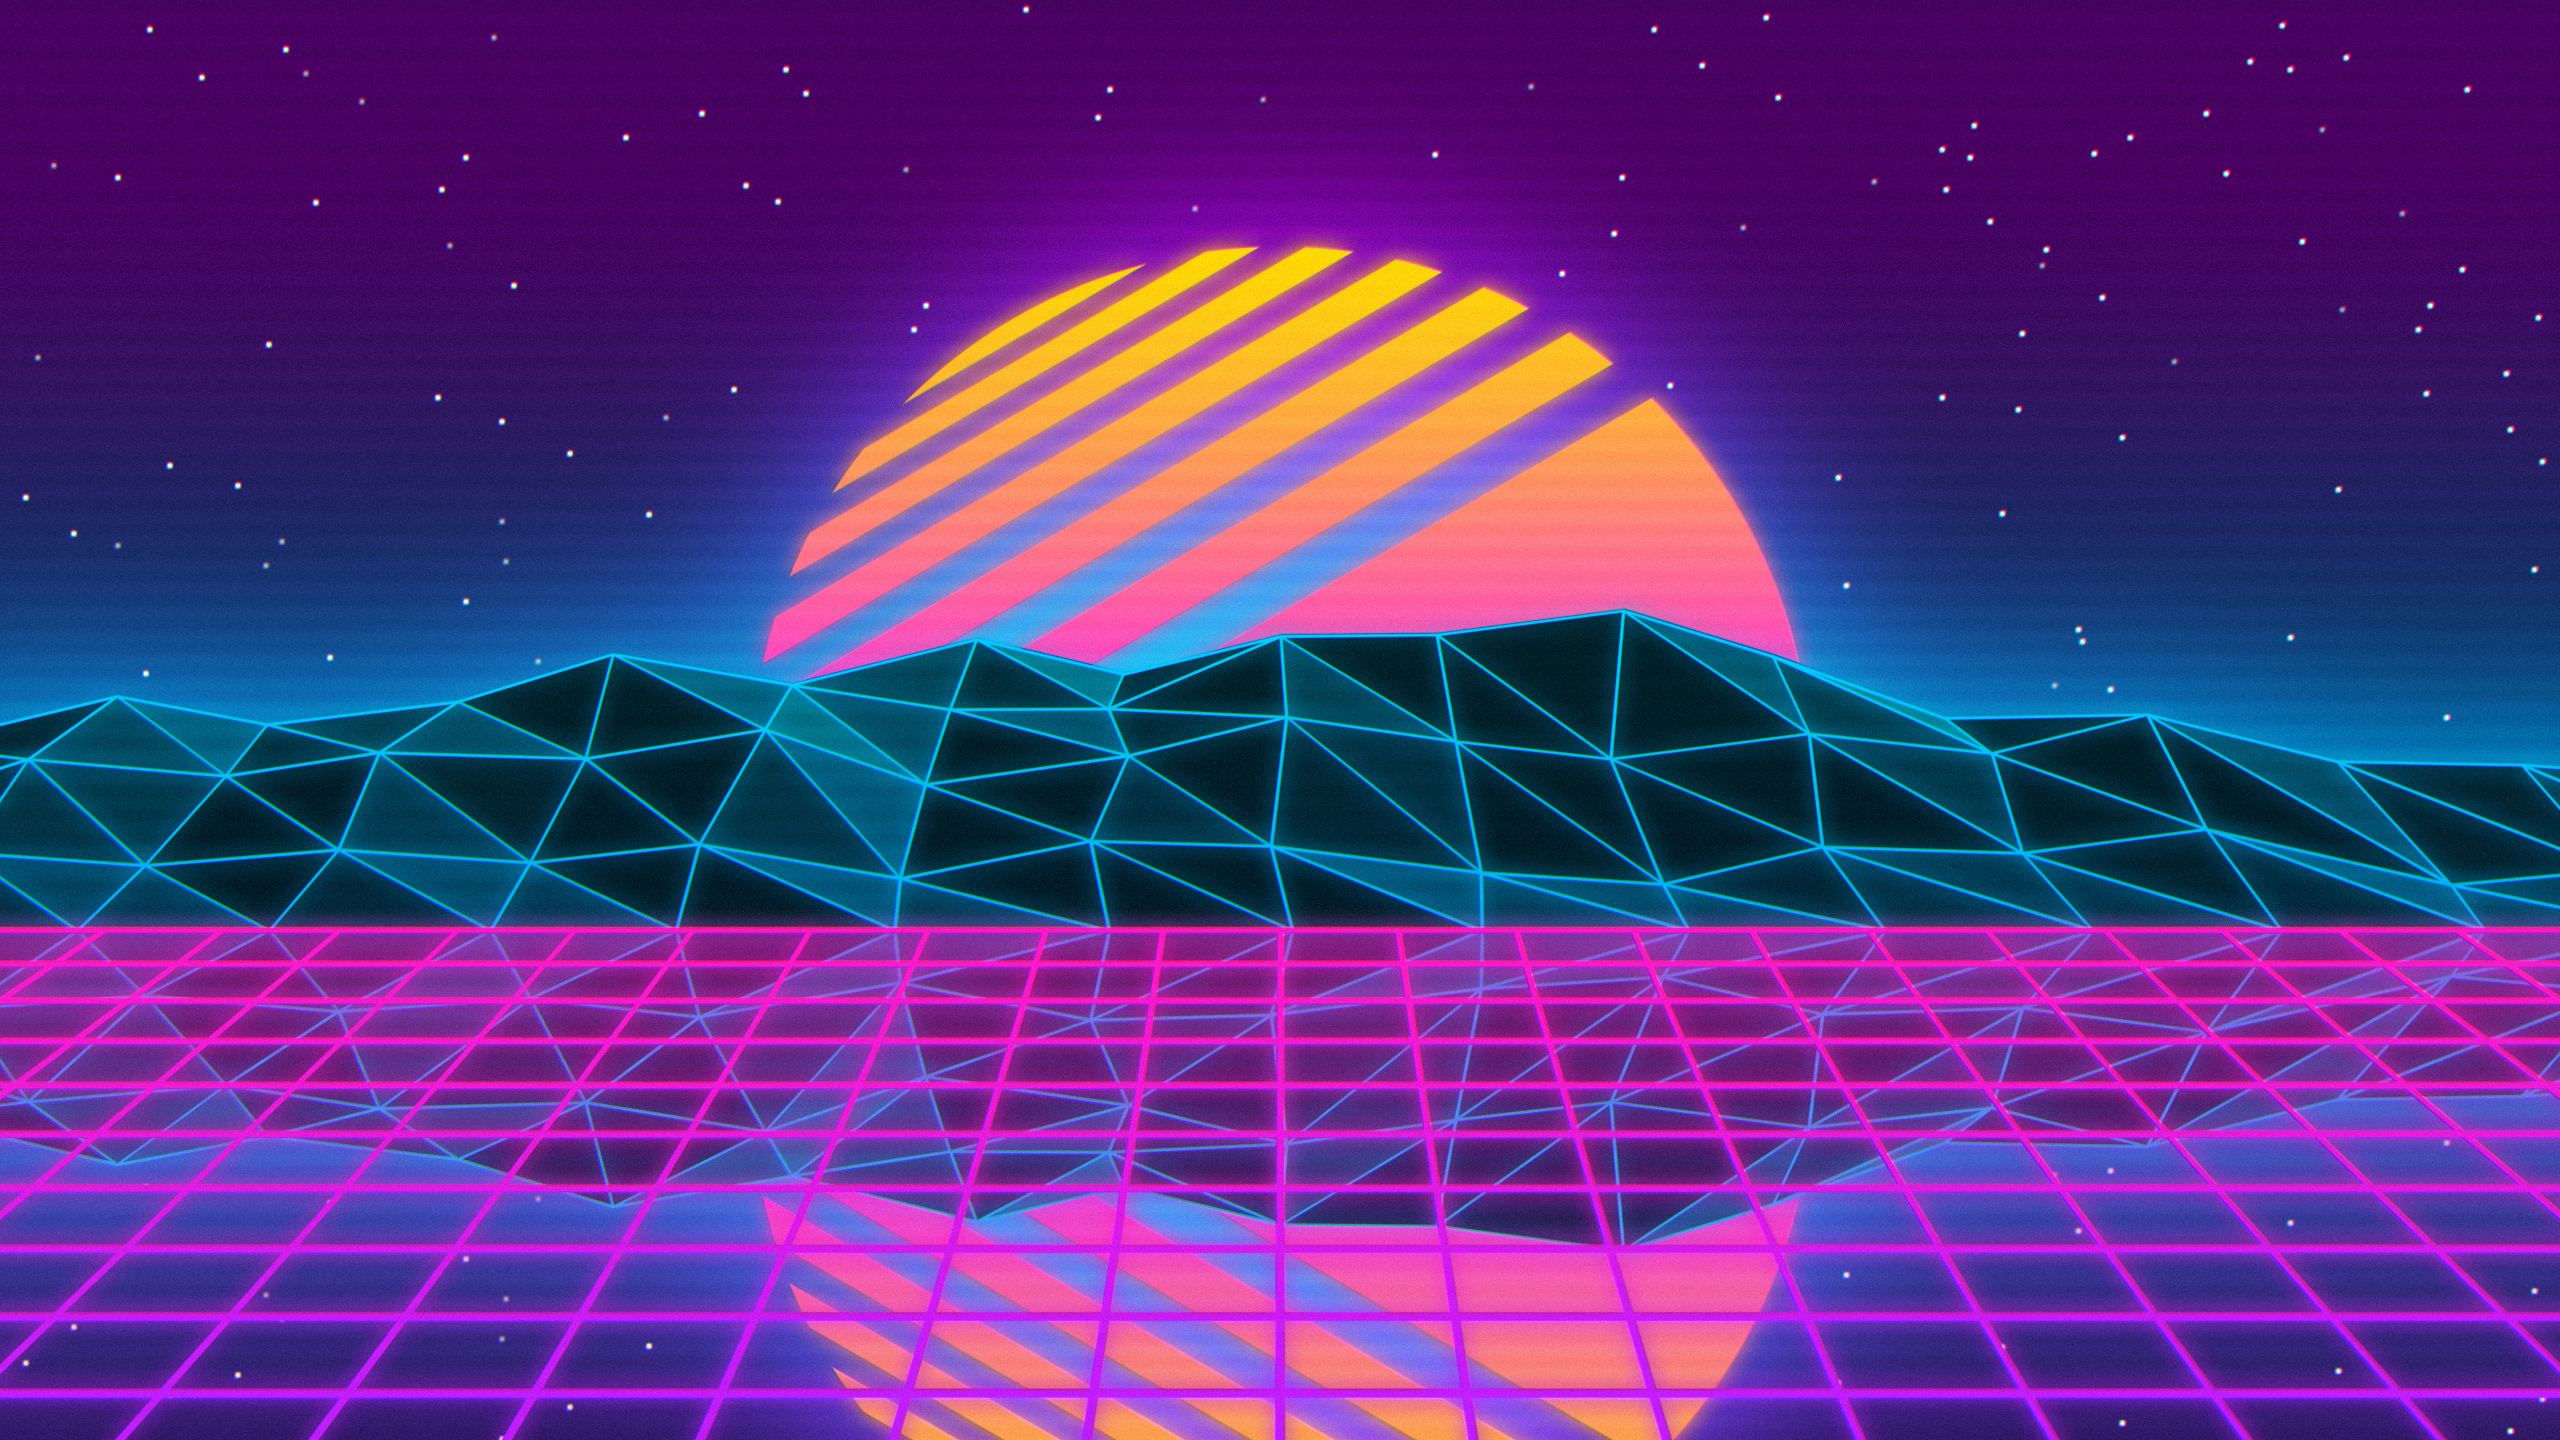 2560x1440 Vaporwave 1440p Resolution Hd 4k Wallpapers